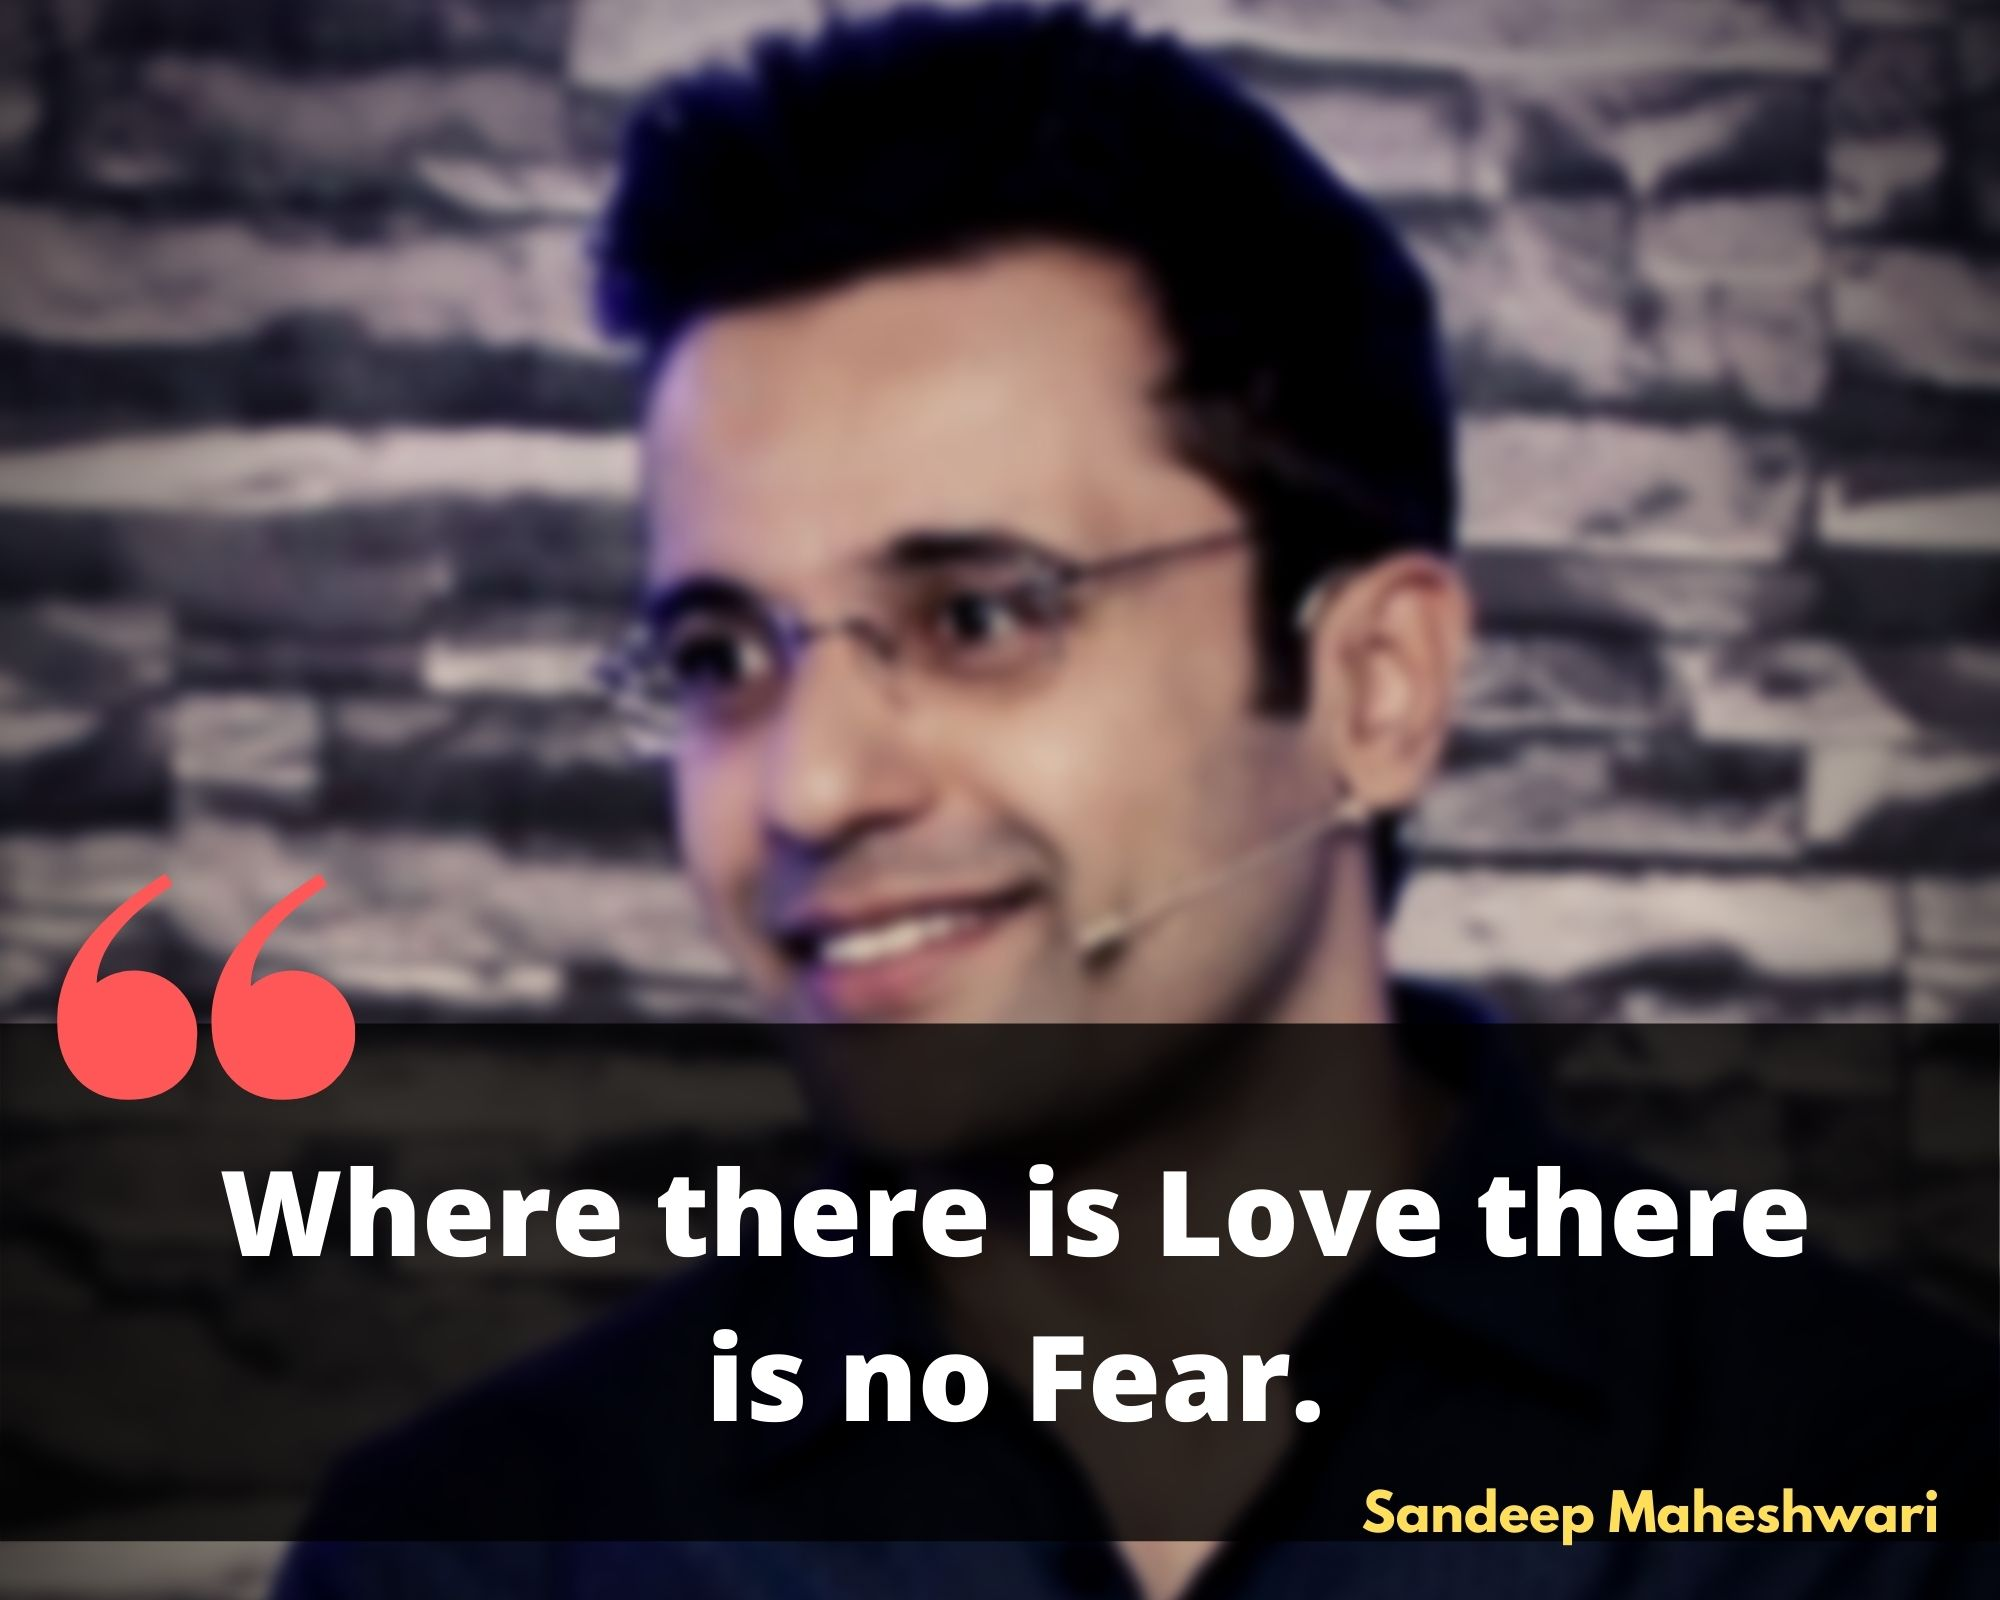 sandeep maheshwari quotes on love